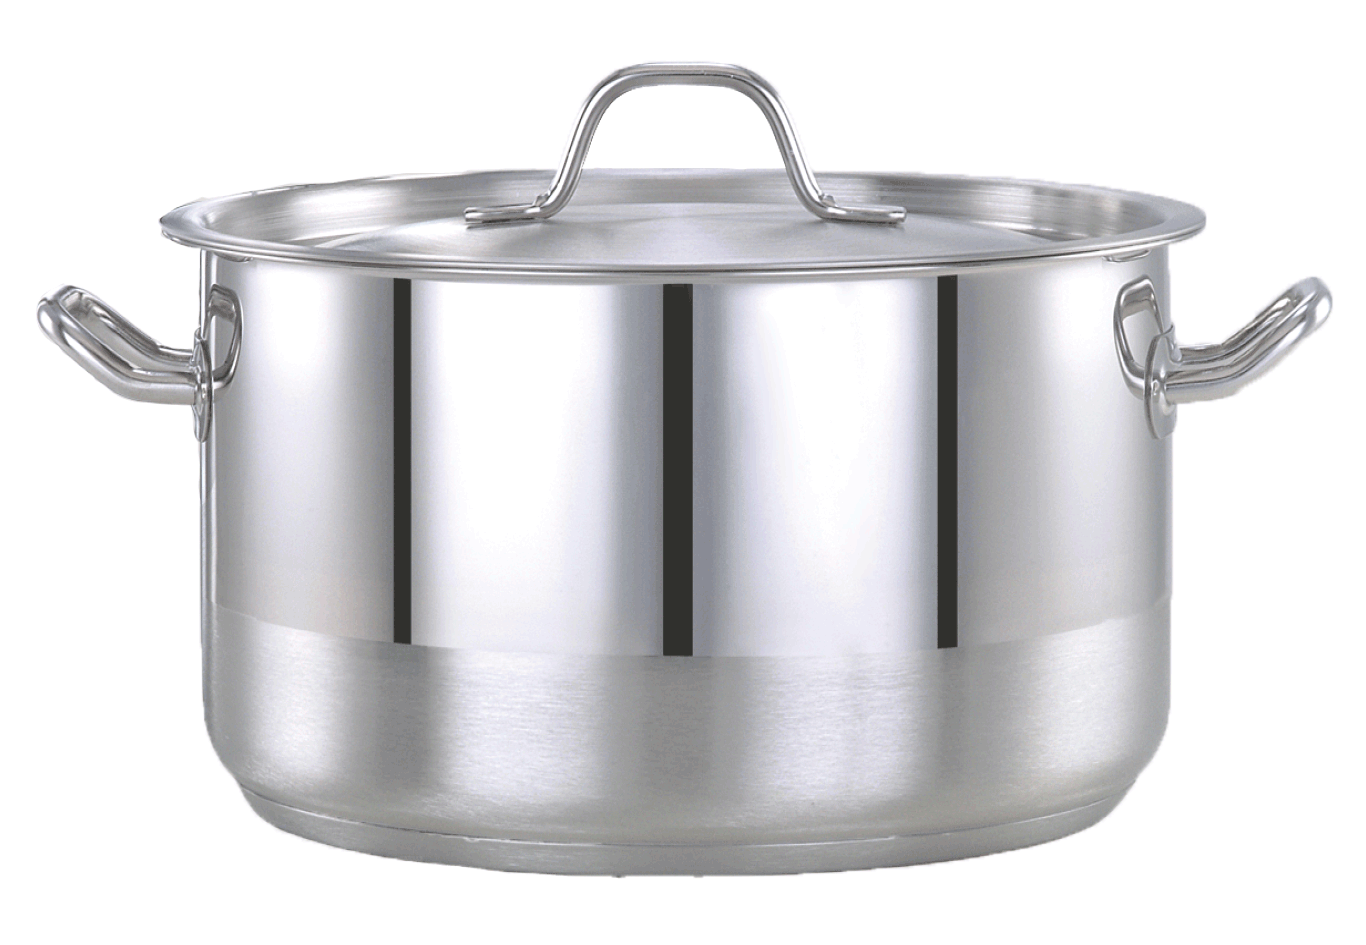 Stainless Steel Casserole